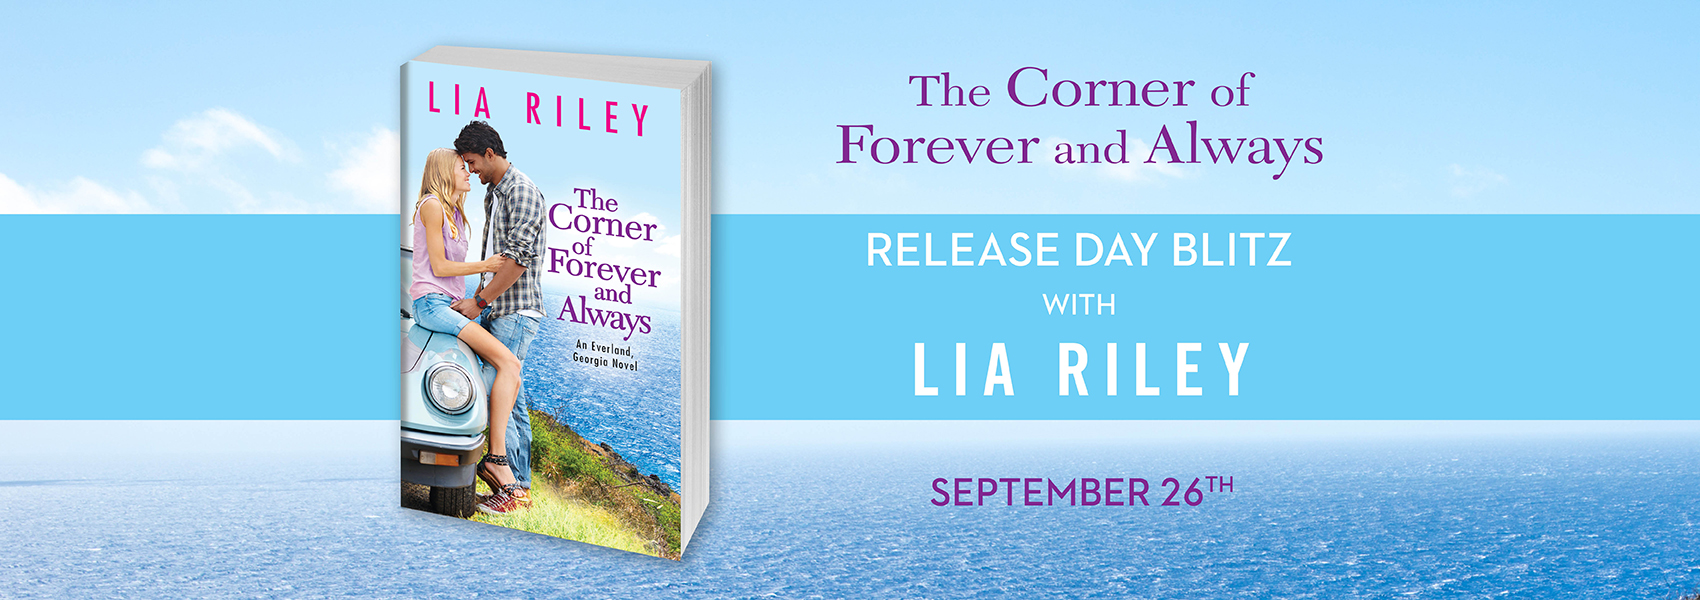 Win THE CORNER OF FOREVER AND ALWAYS by Lia Riley!